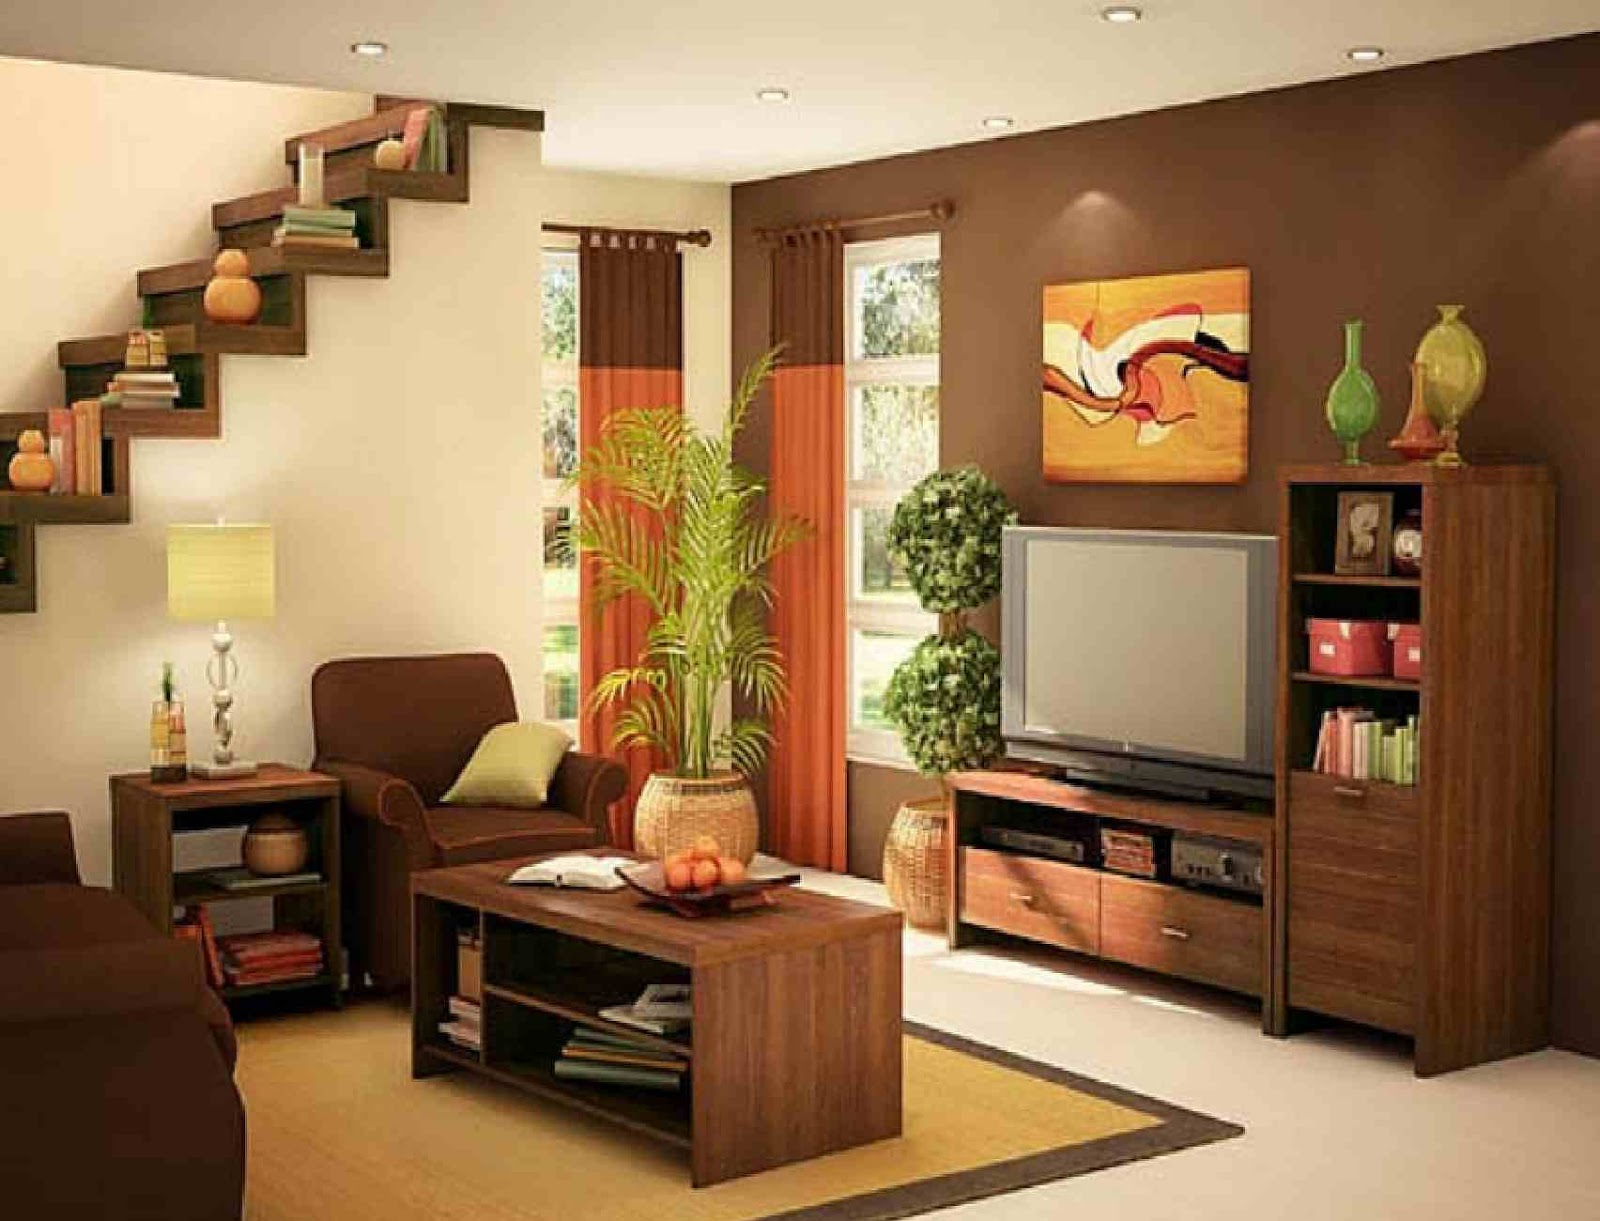 Home interior designs simple living room designs for House living room interior design